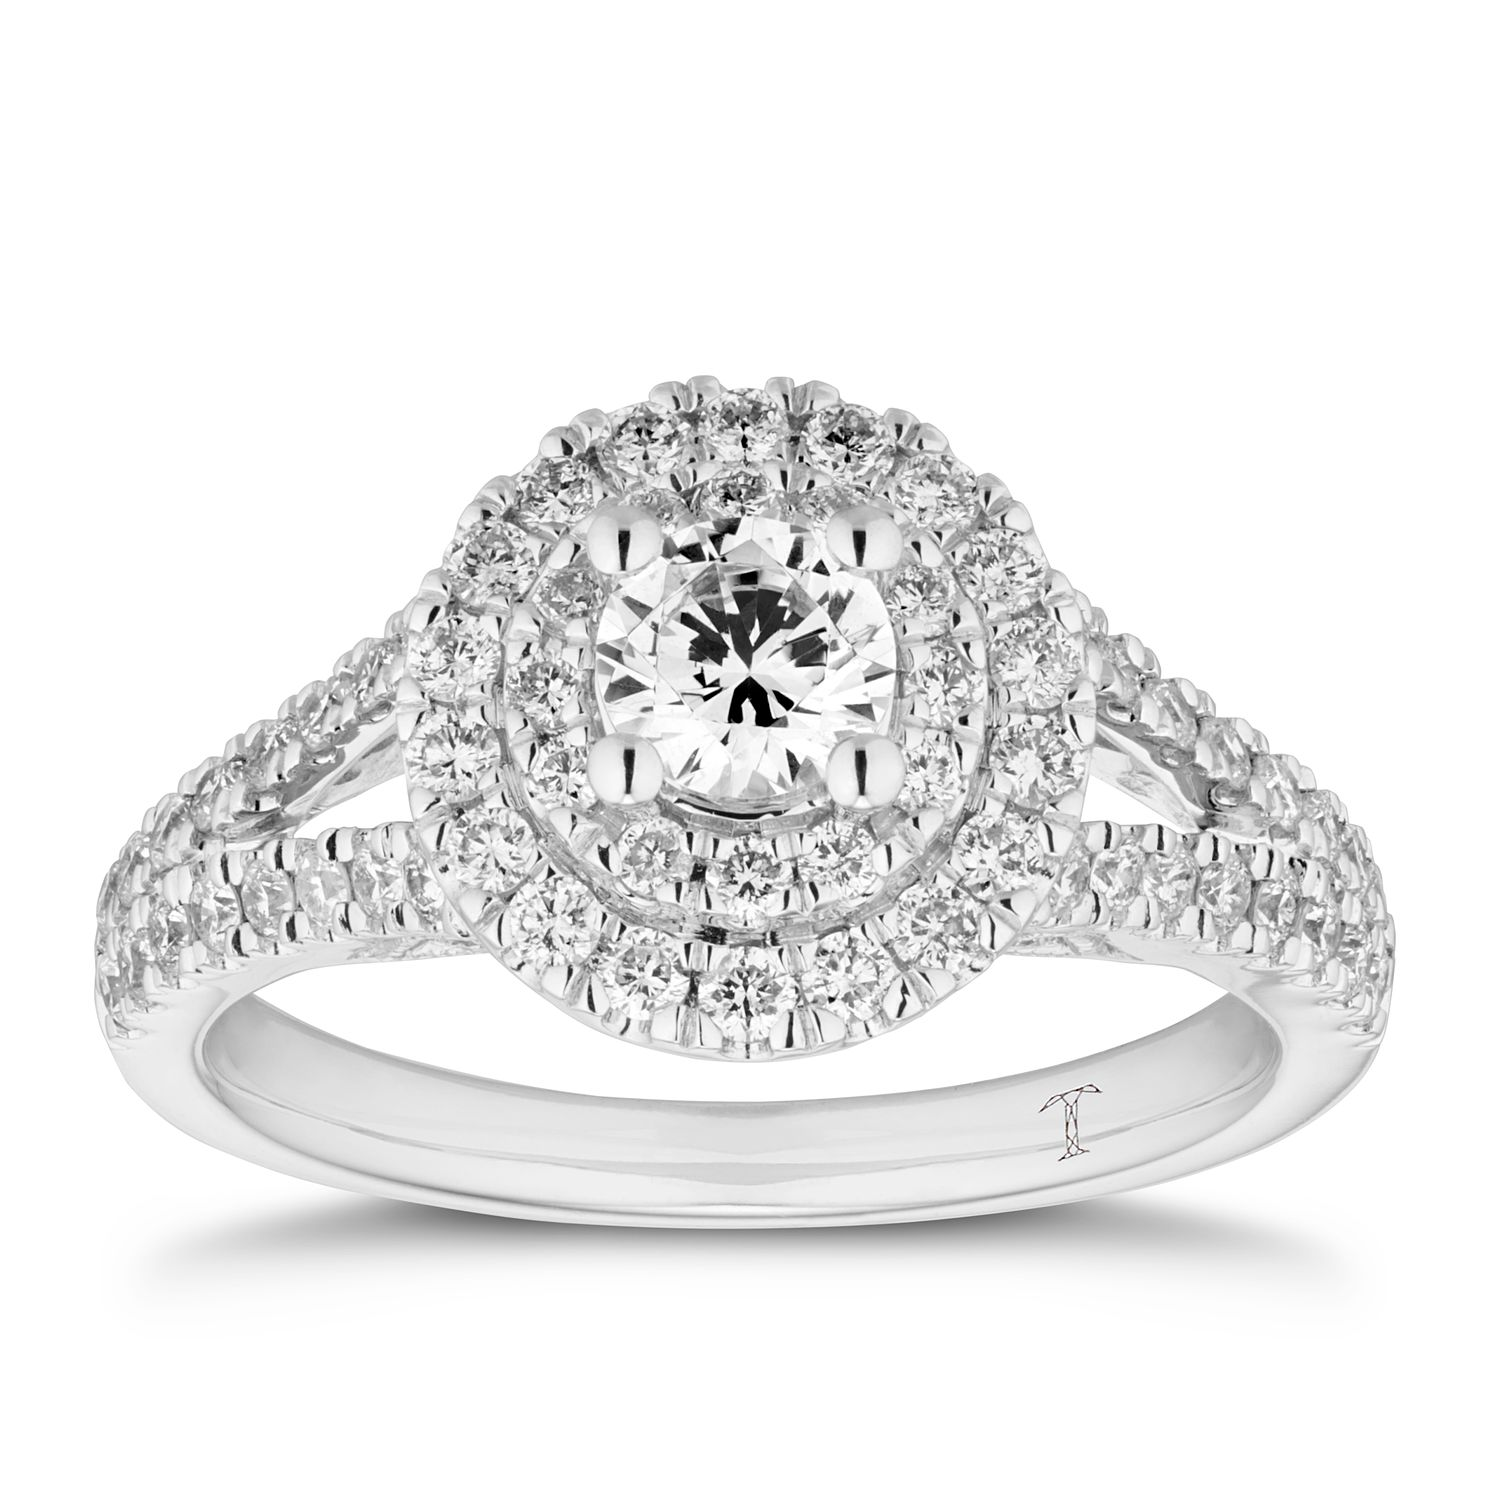 Tolkowsky 18ct White Gold 1ct Diamond Double Round Halo Ring - Product number 5889138